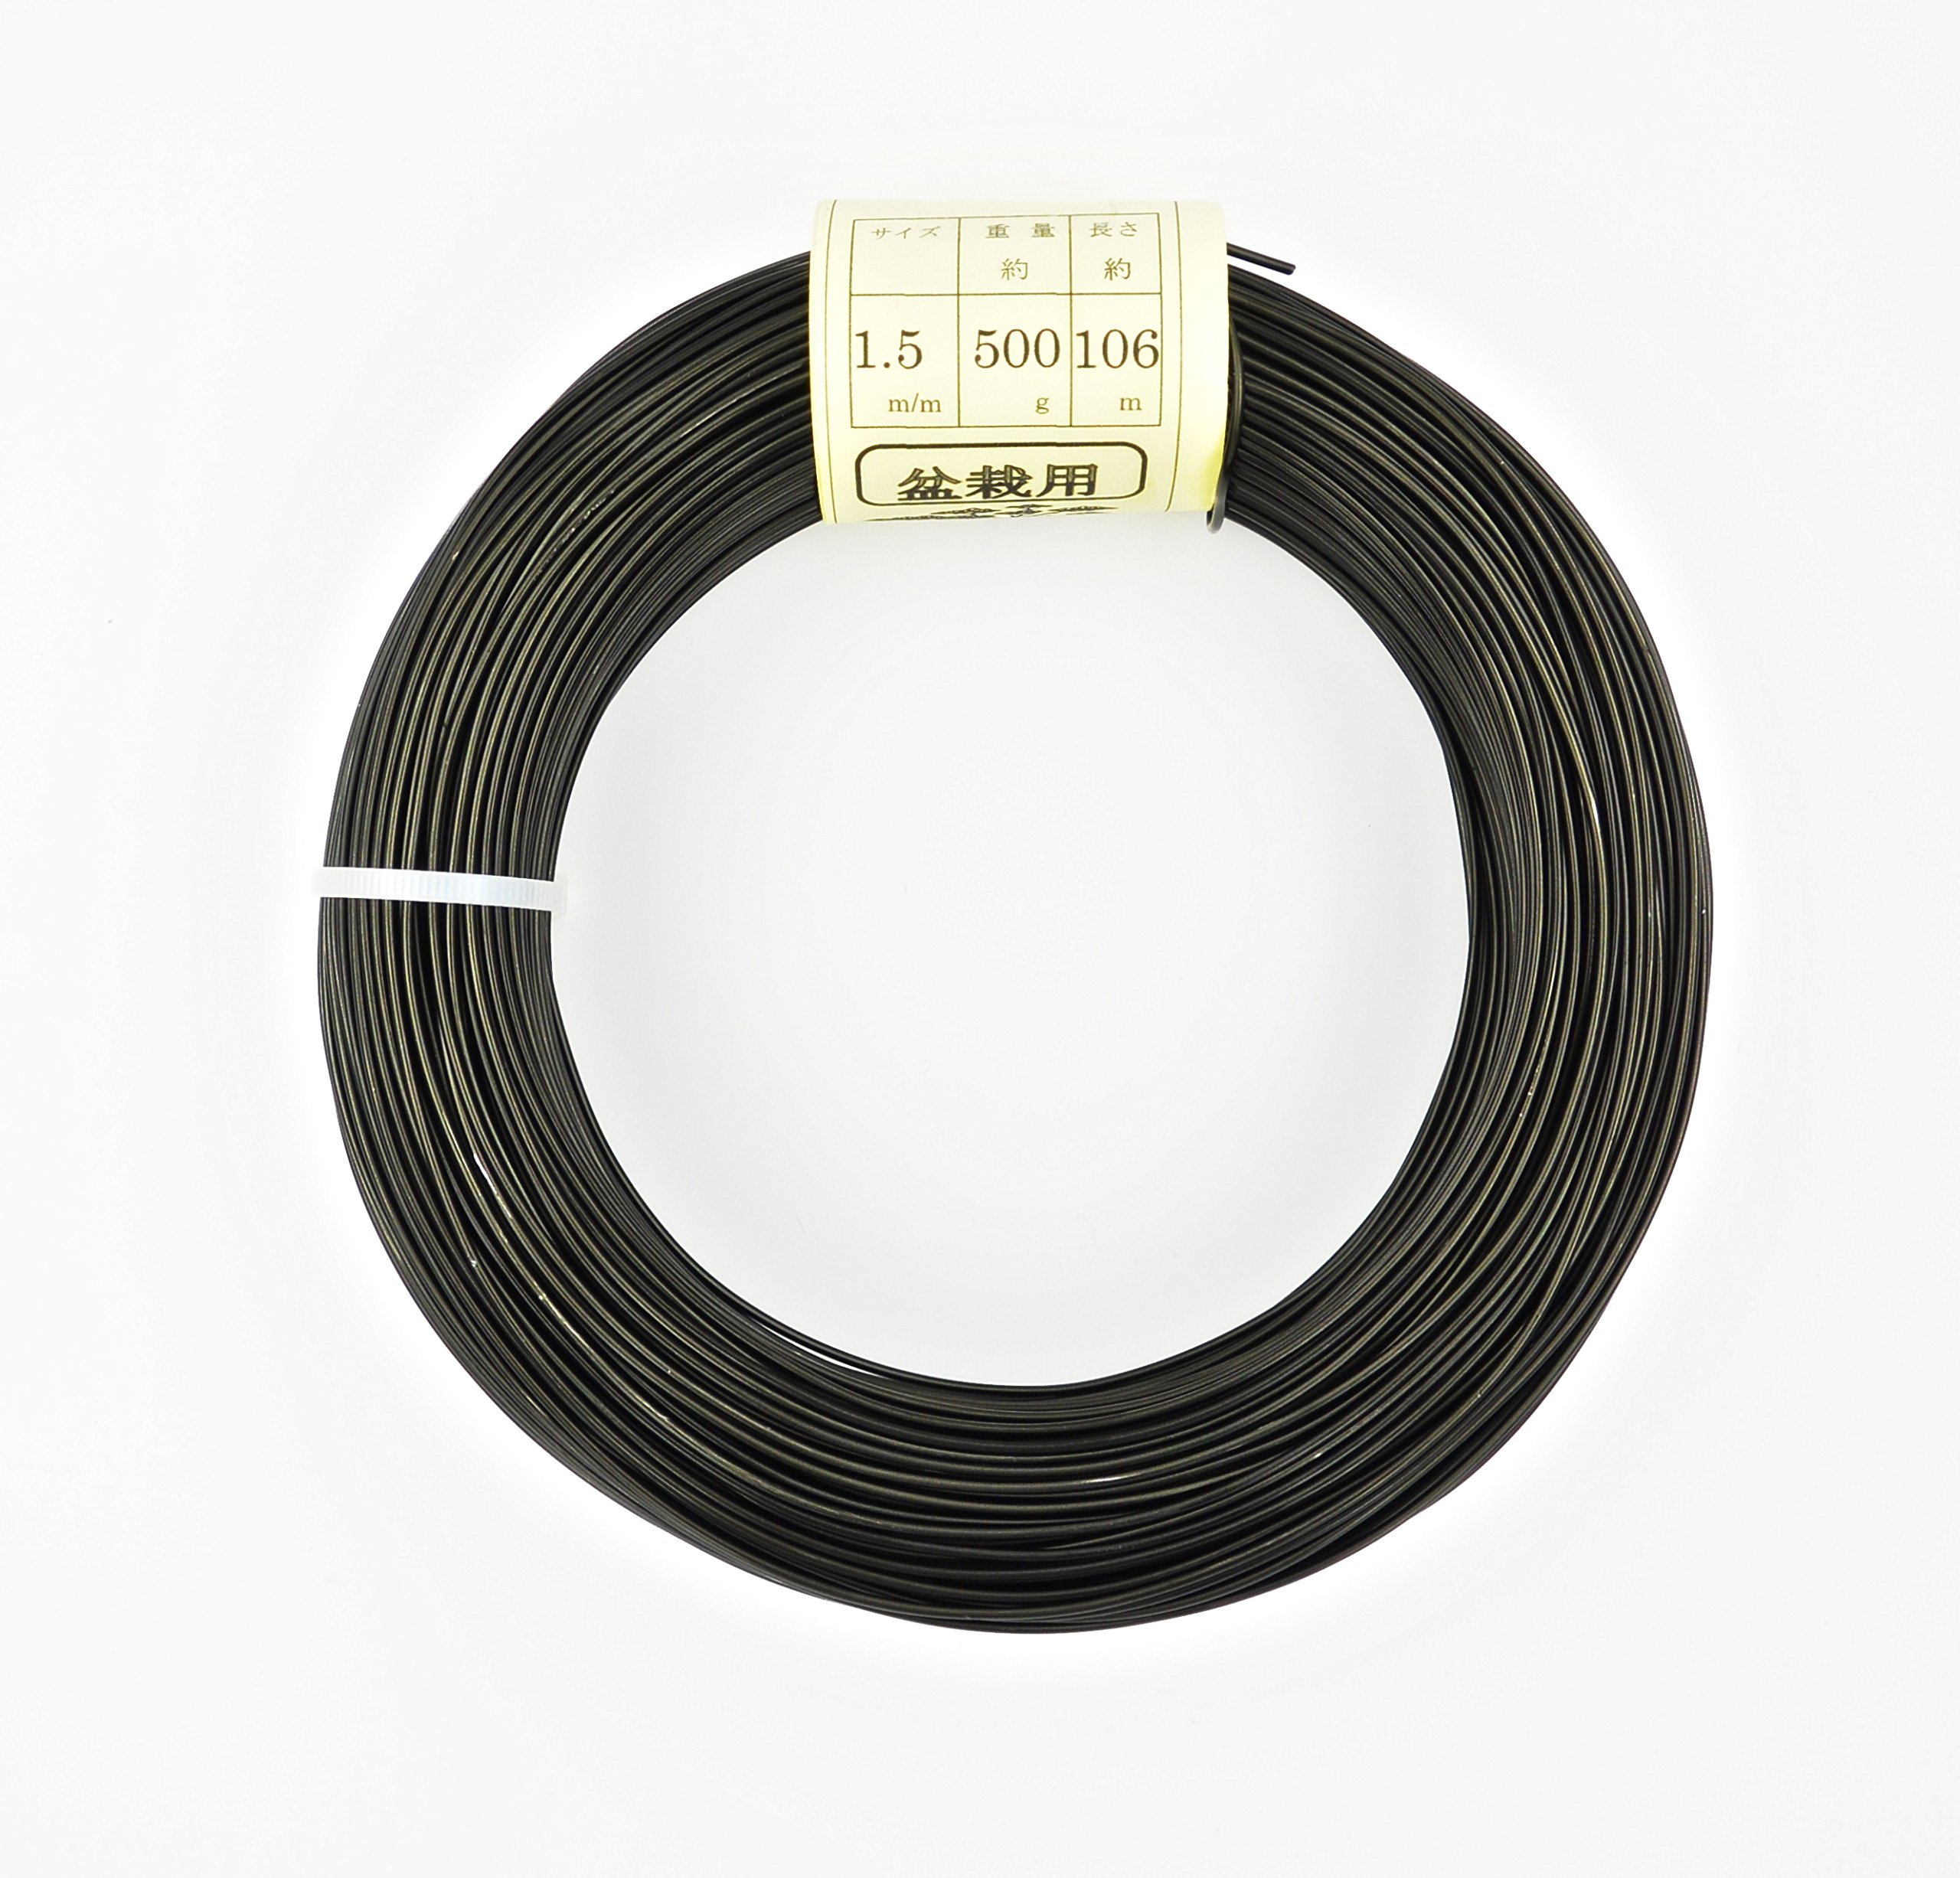 Bonsai Wire, Made in Japan, 500 grams, 1.5mm; 348ft.